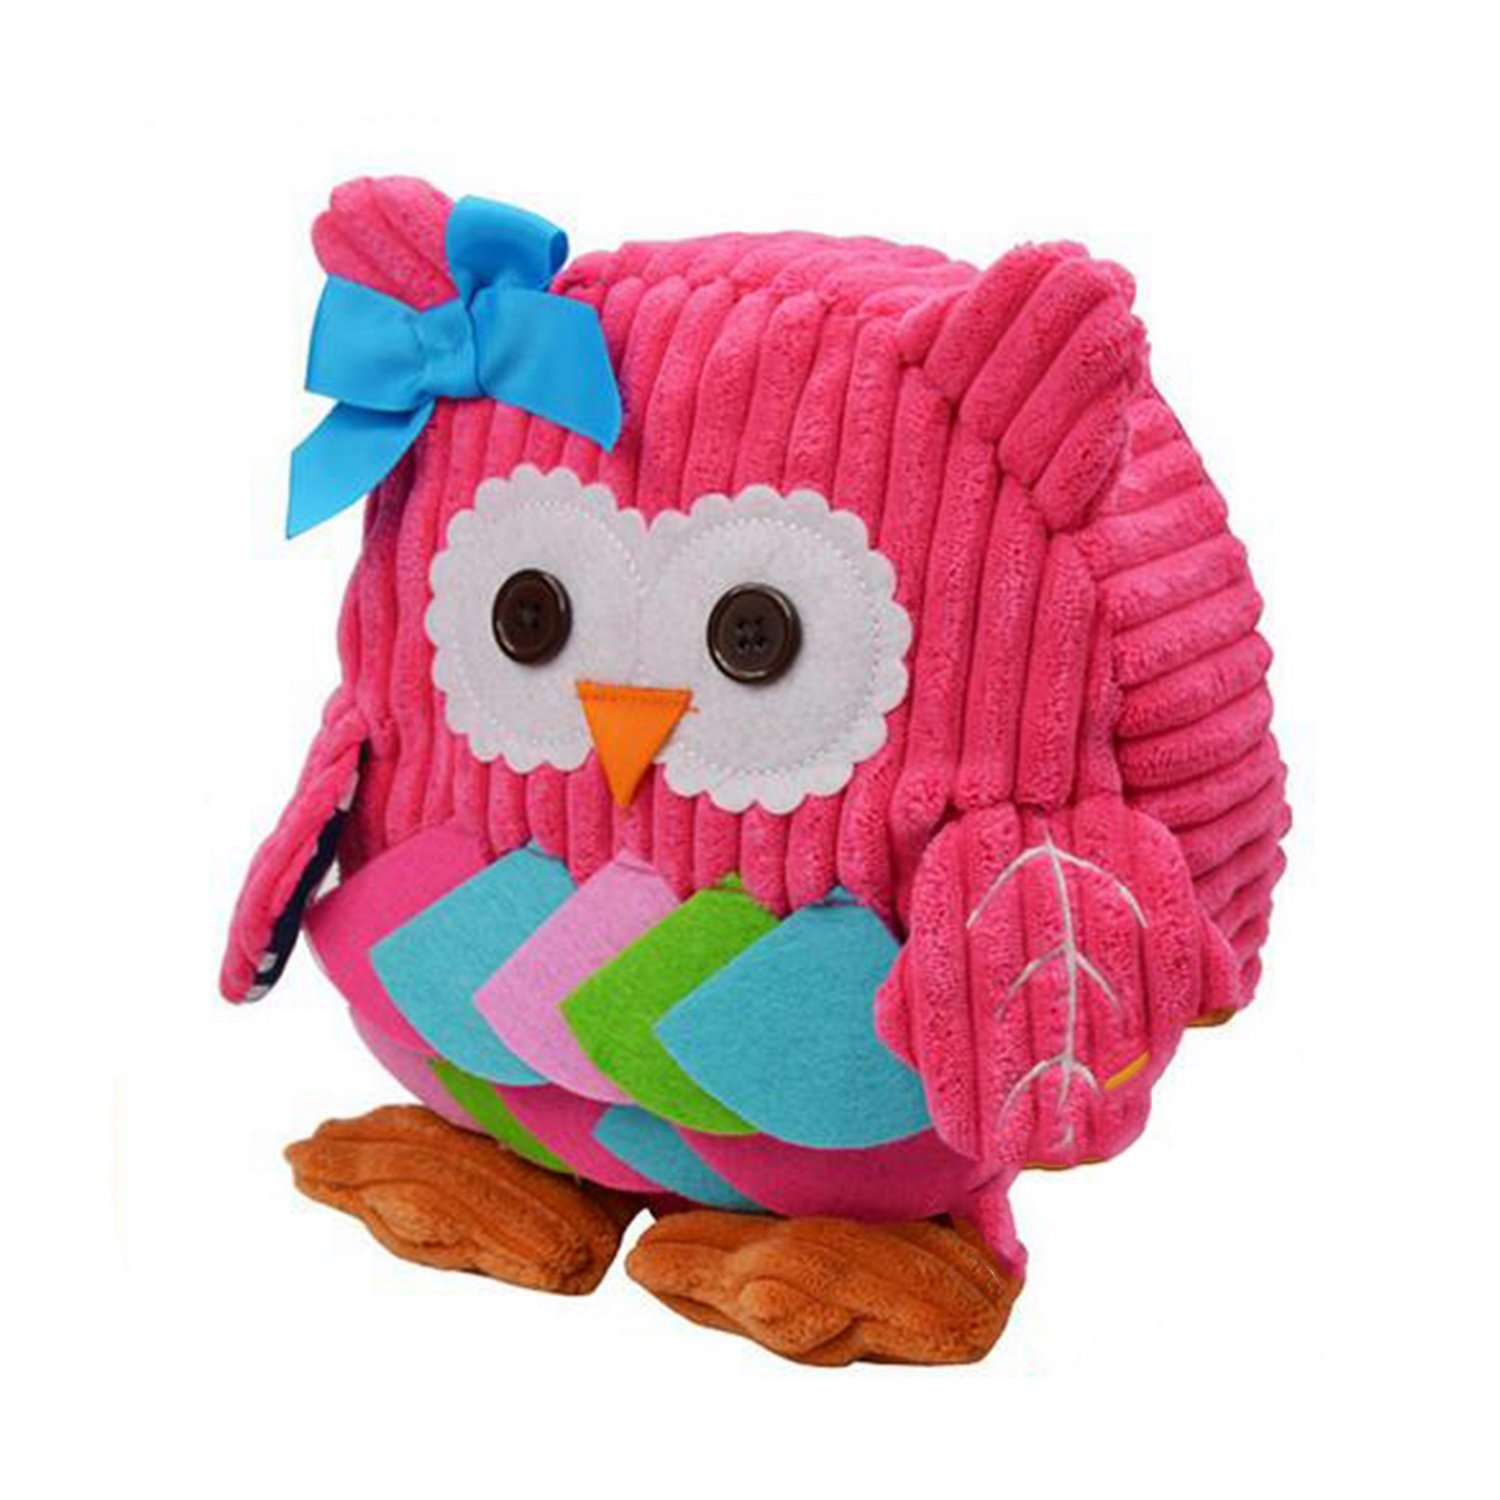 dc5dc4597110 Get Quotations · Kids Backpack Zoo 3D Cute Zoo Owl Cartoon School Toddler  Sidesick Boys Girls Bags